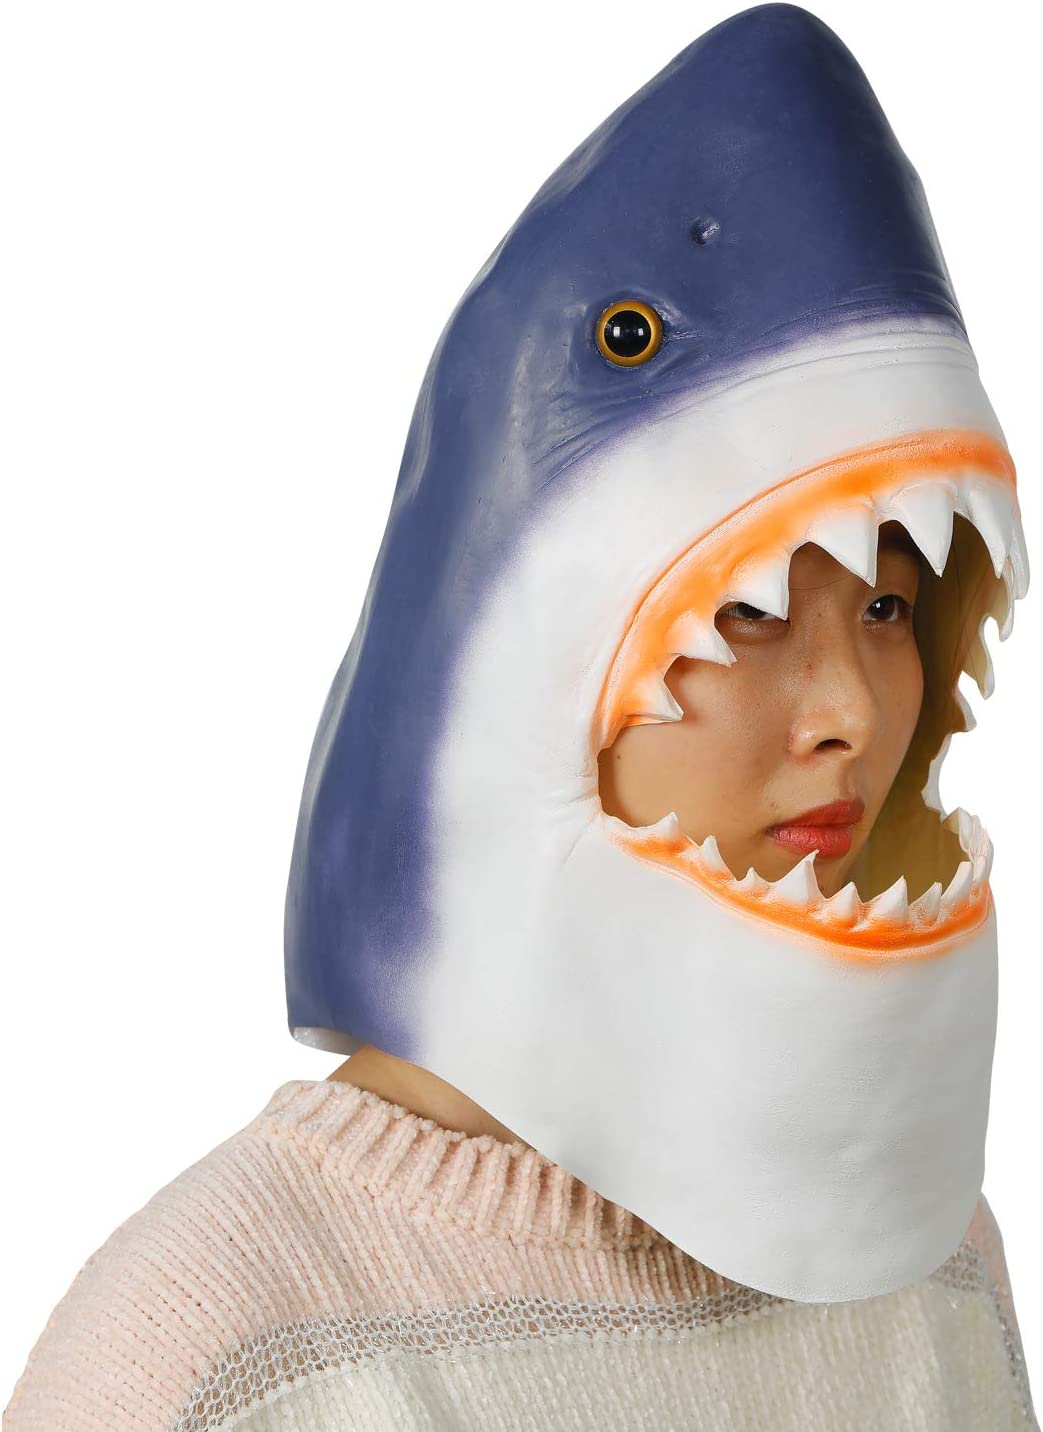 ifkoo Shark Mask Novelty Halloween Costume Party Latex Animal Head Mask